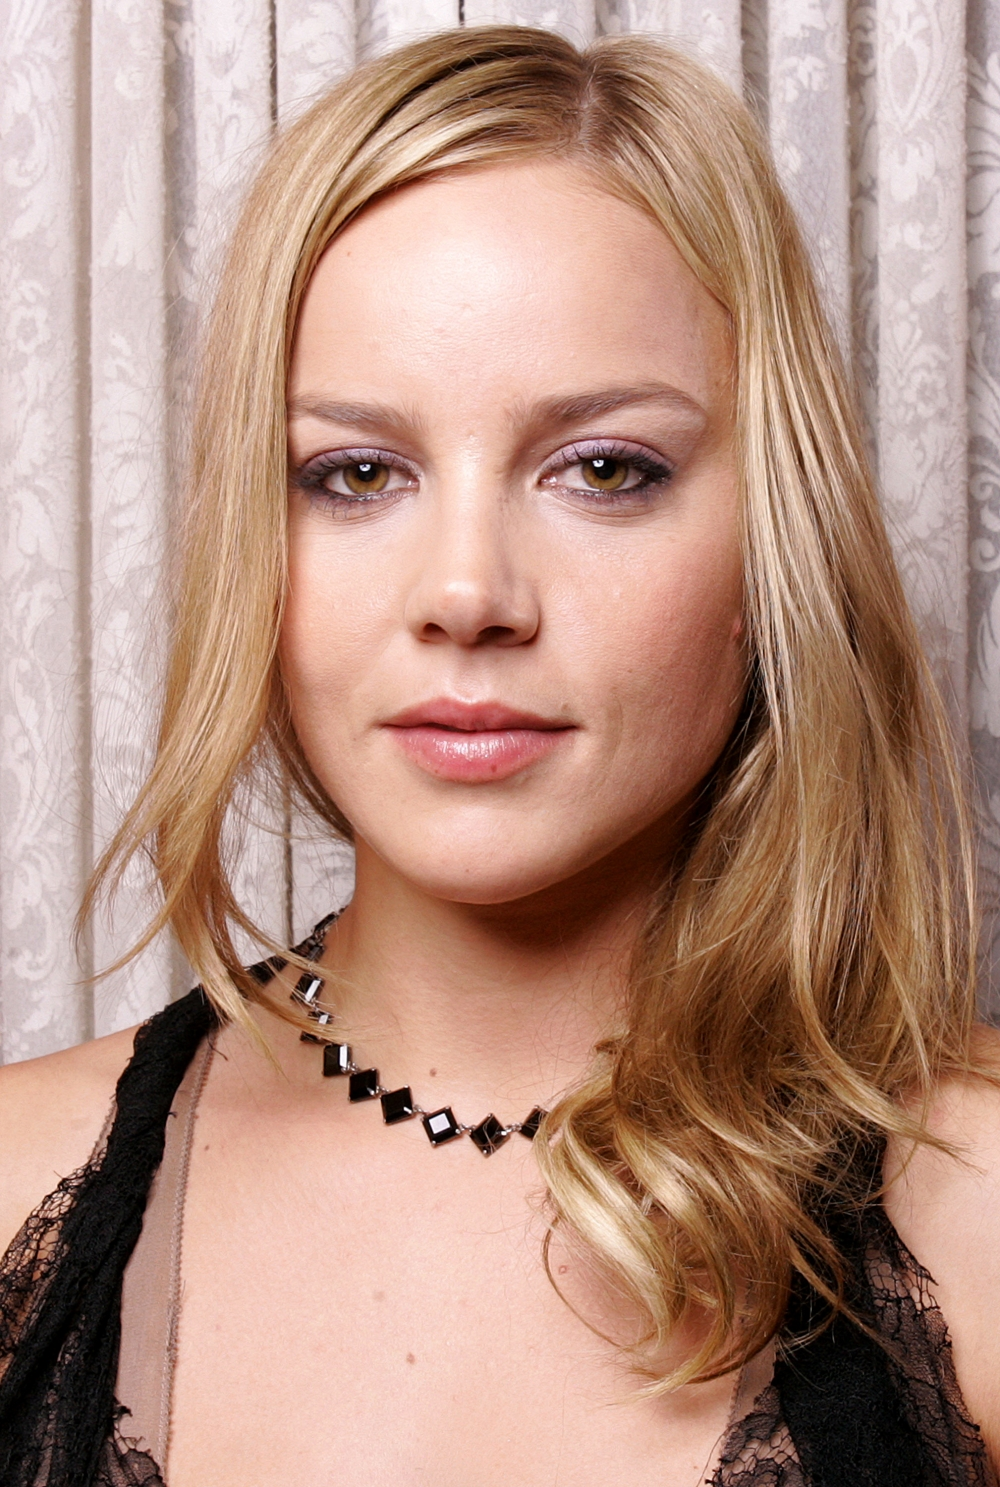 15 Beautiful Blonde Actresses In Hollywood